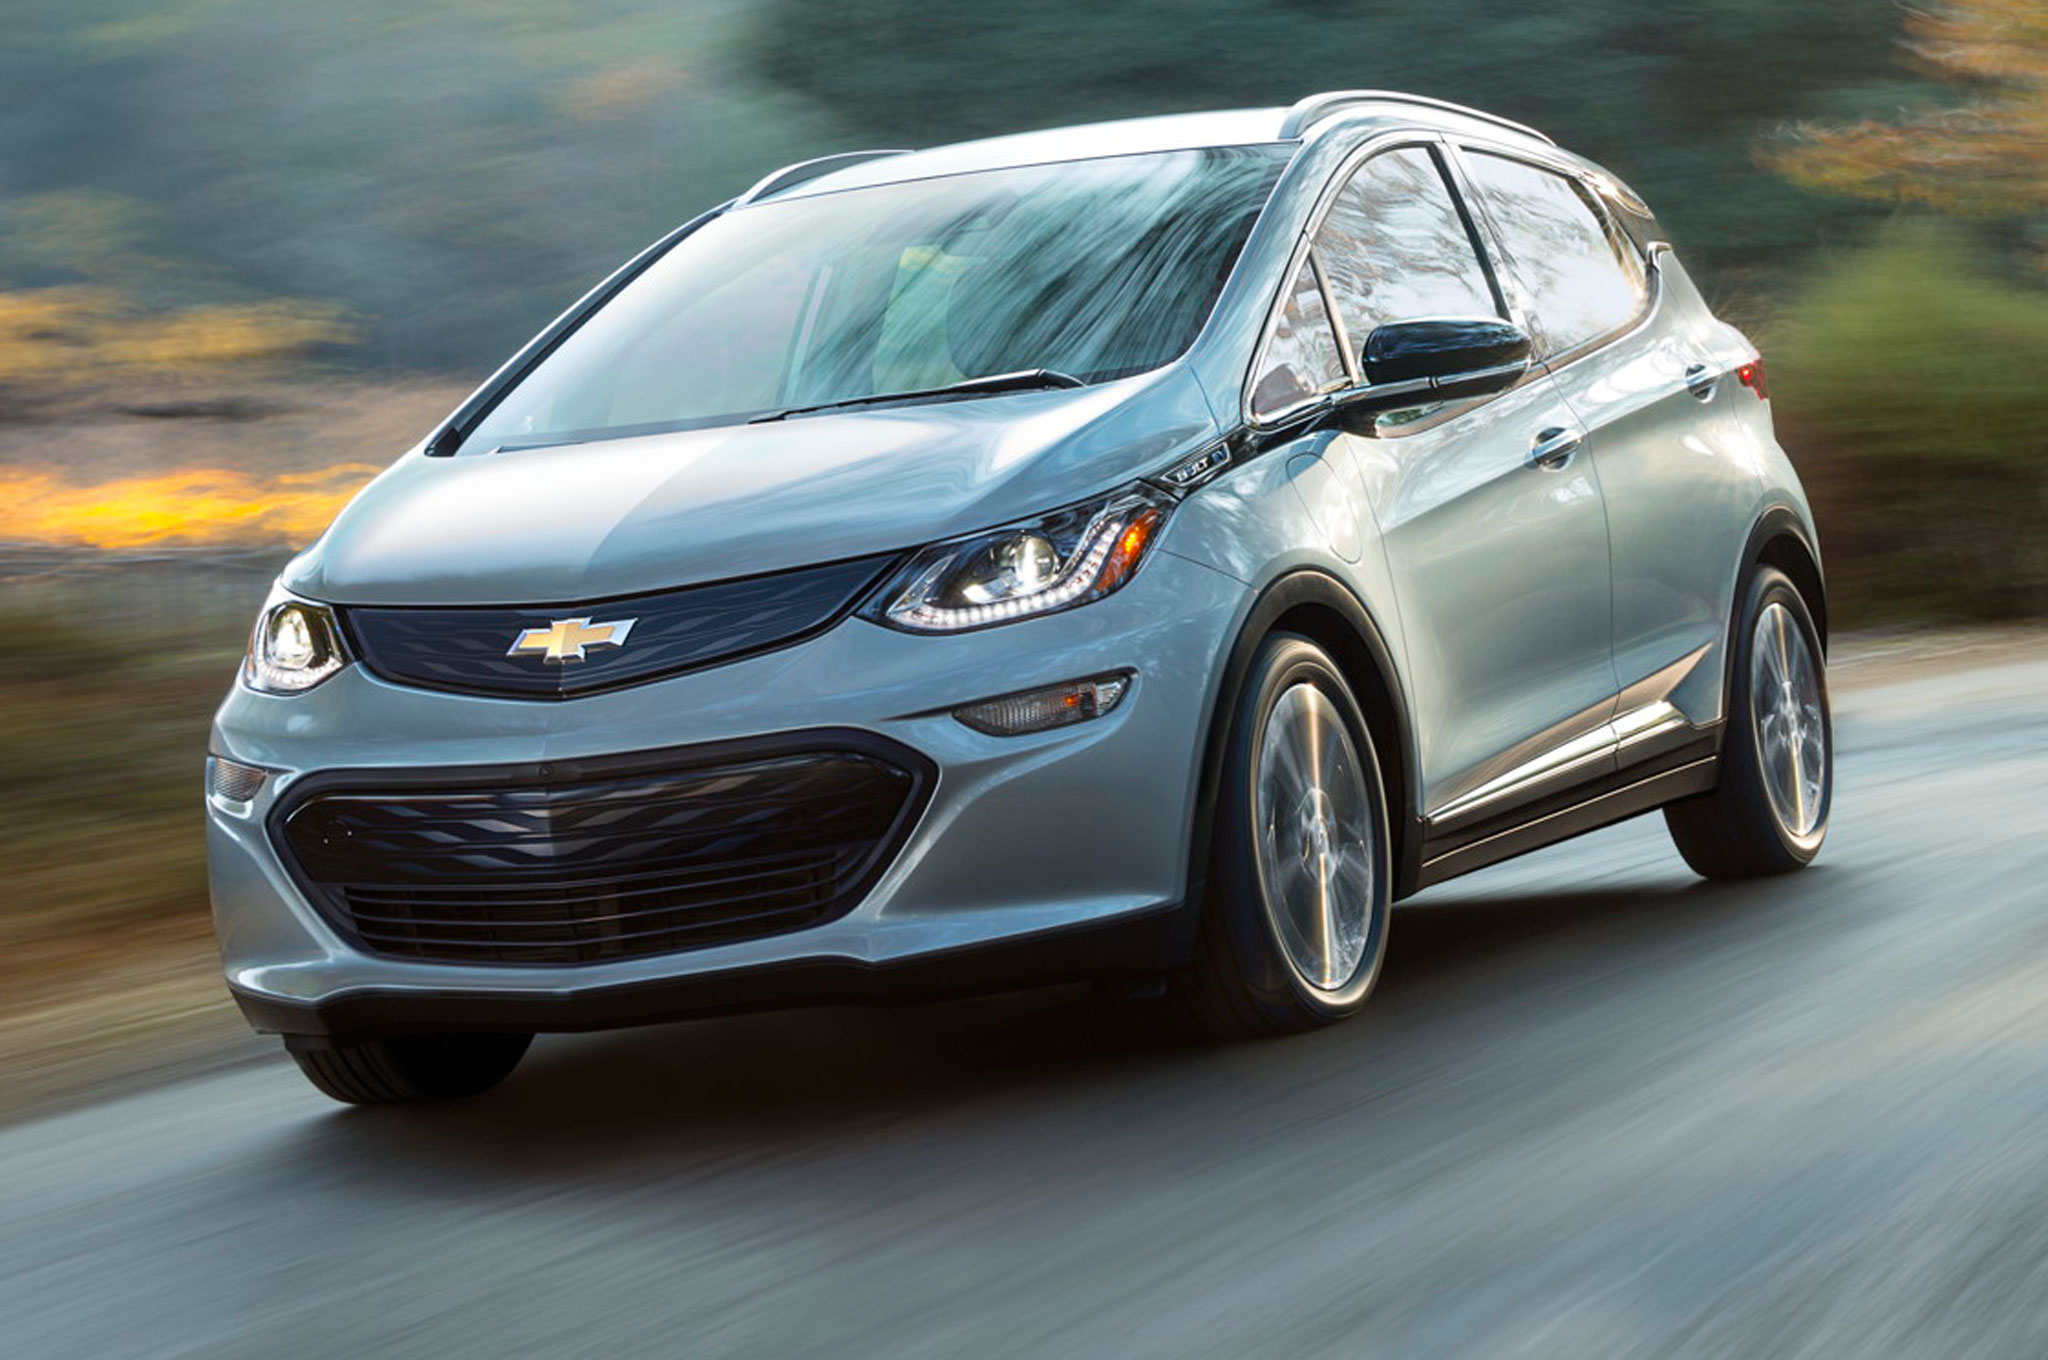 2017 Chevrolet Bolt EV Quick Drive